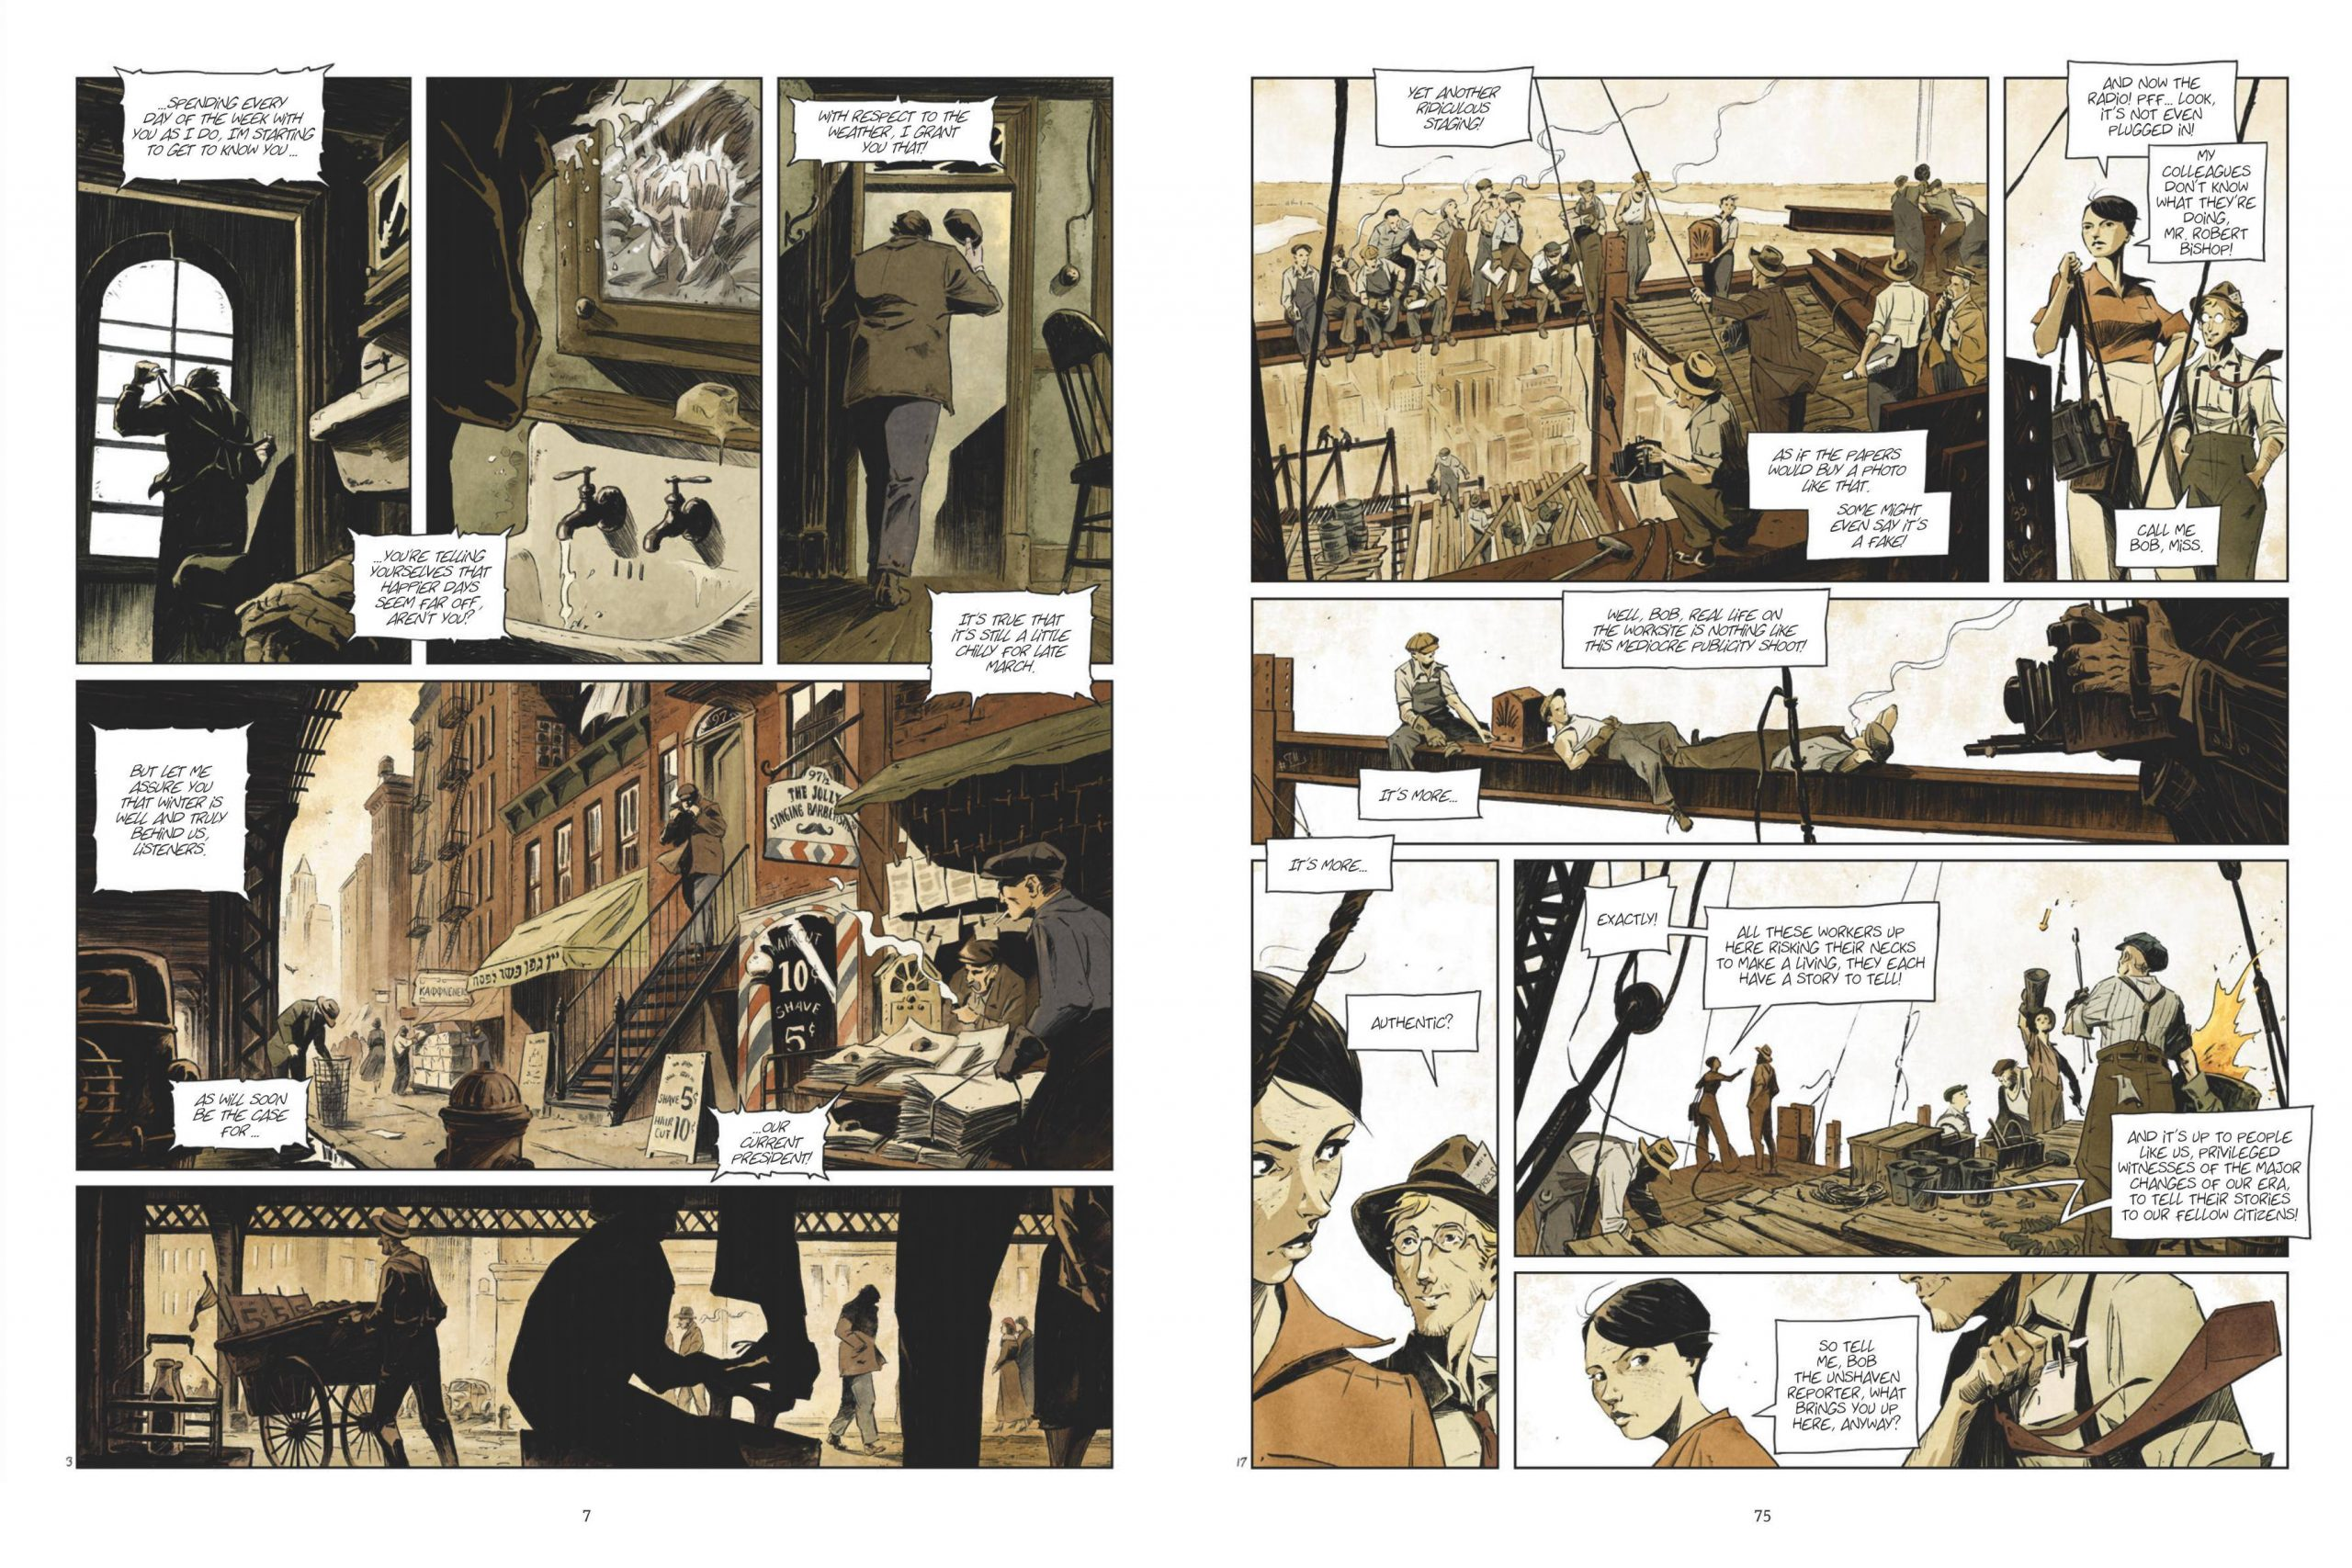 Giant graphic novel review